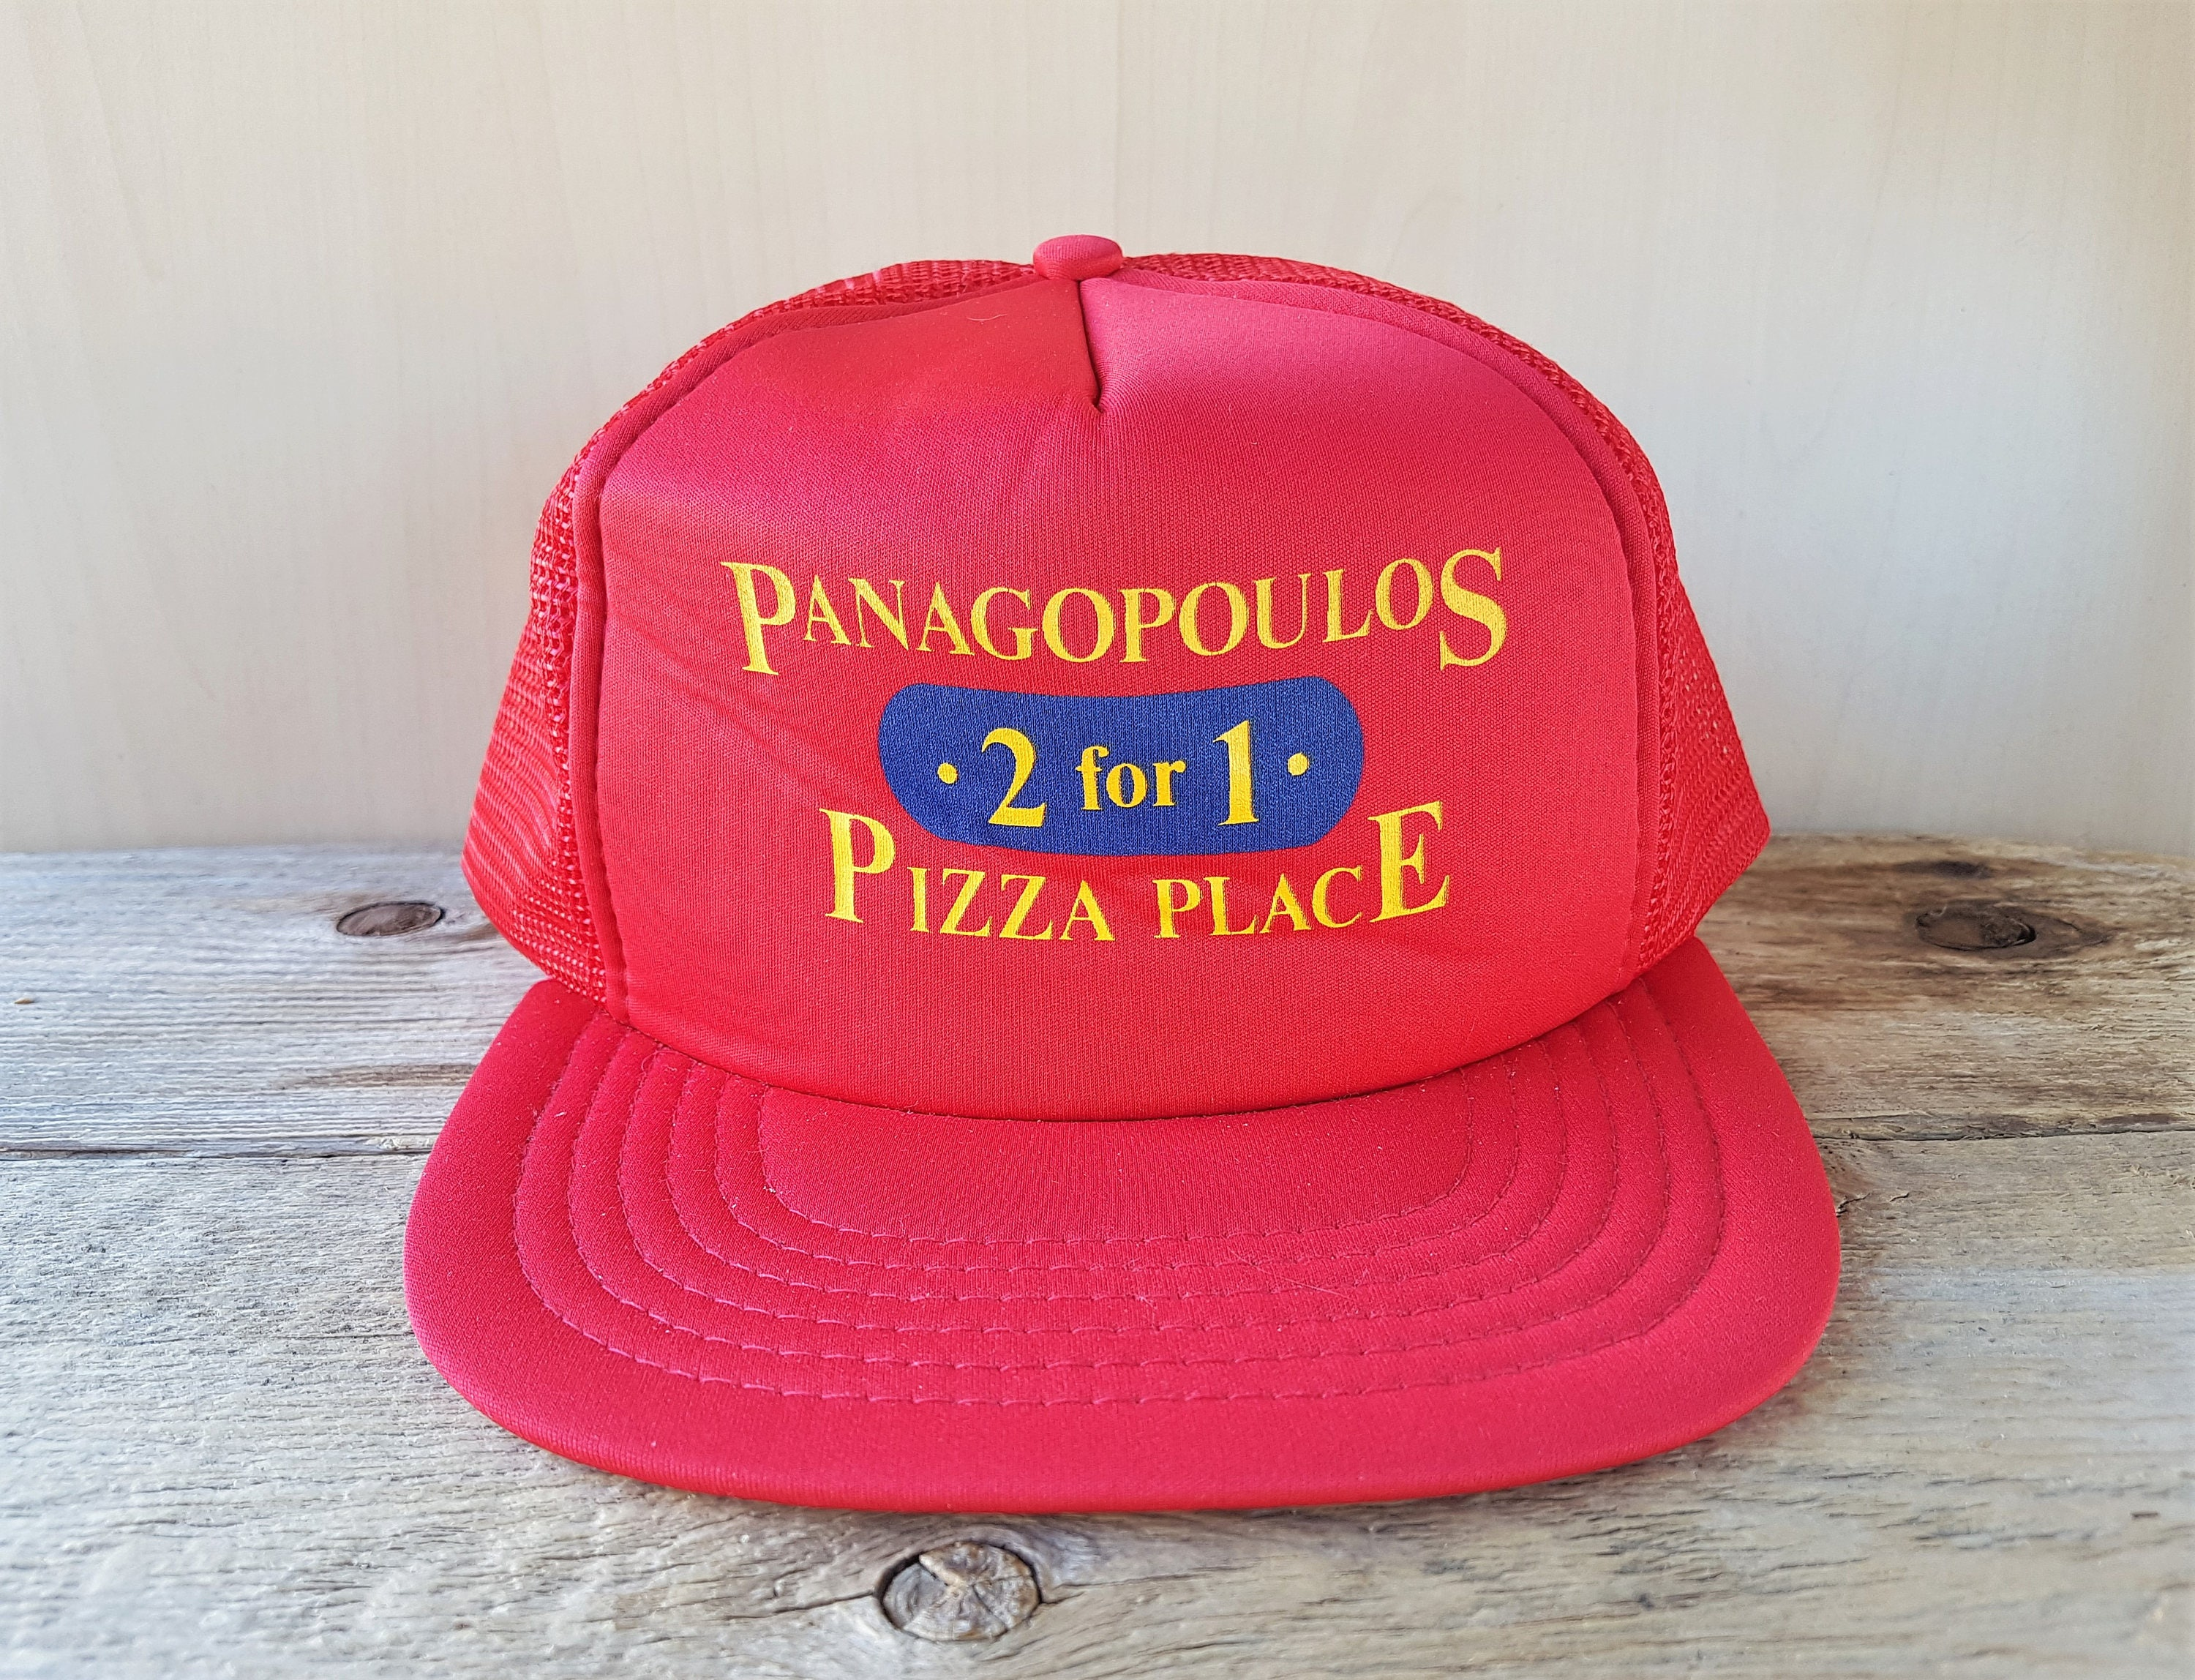 244c6375b12 PANAGOPOULOS 2 for 1 Pizza Place Original Vintage 80s Red Mesh